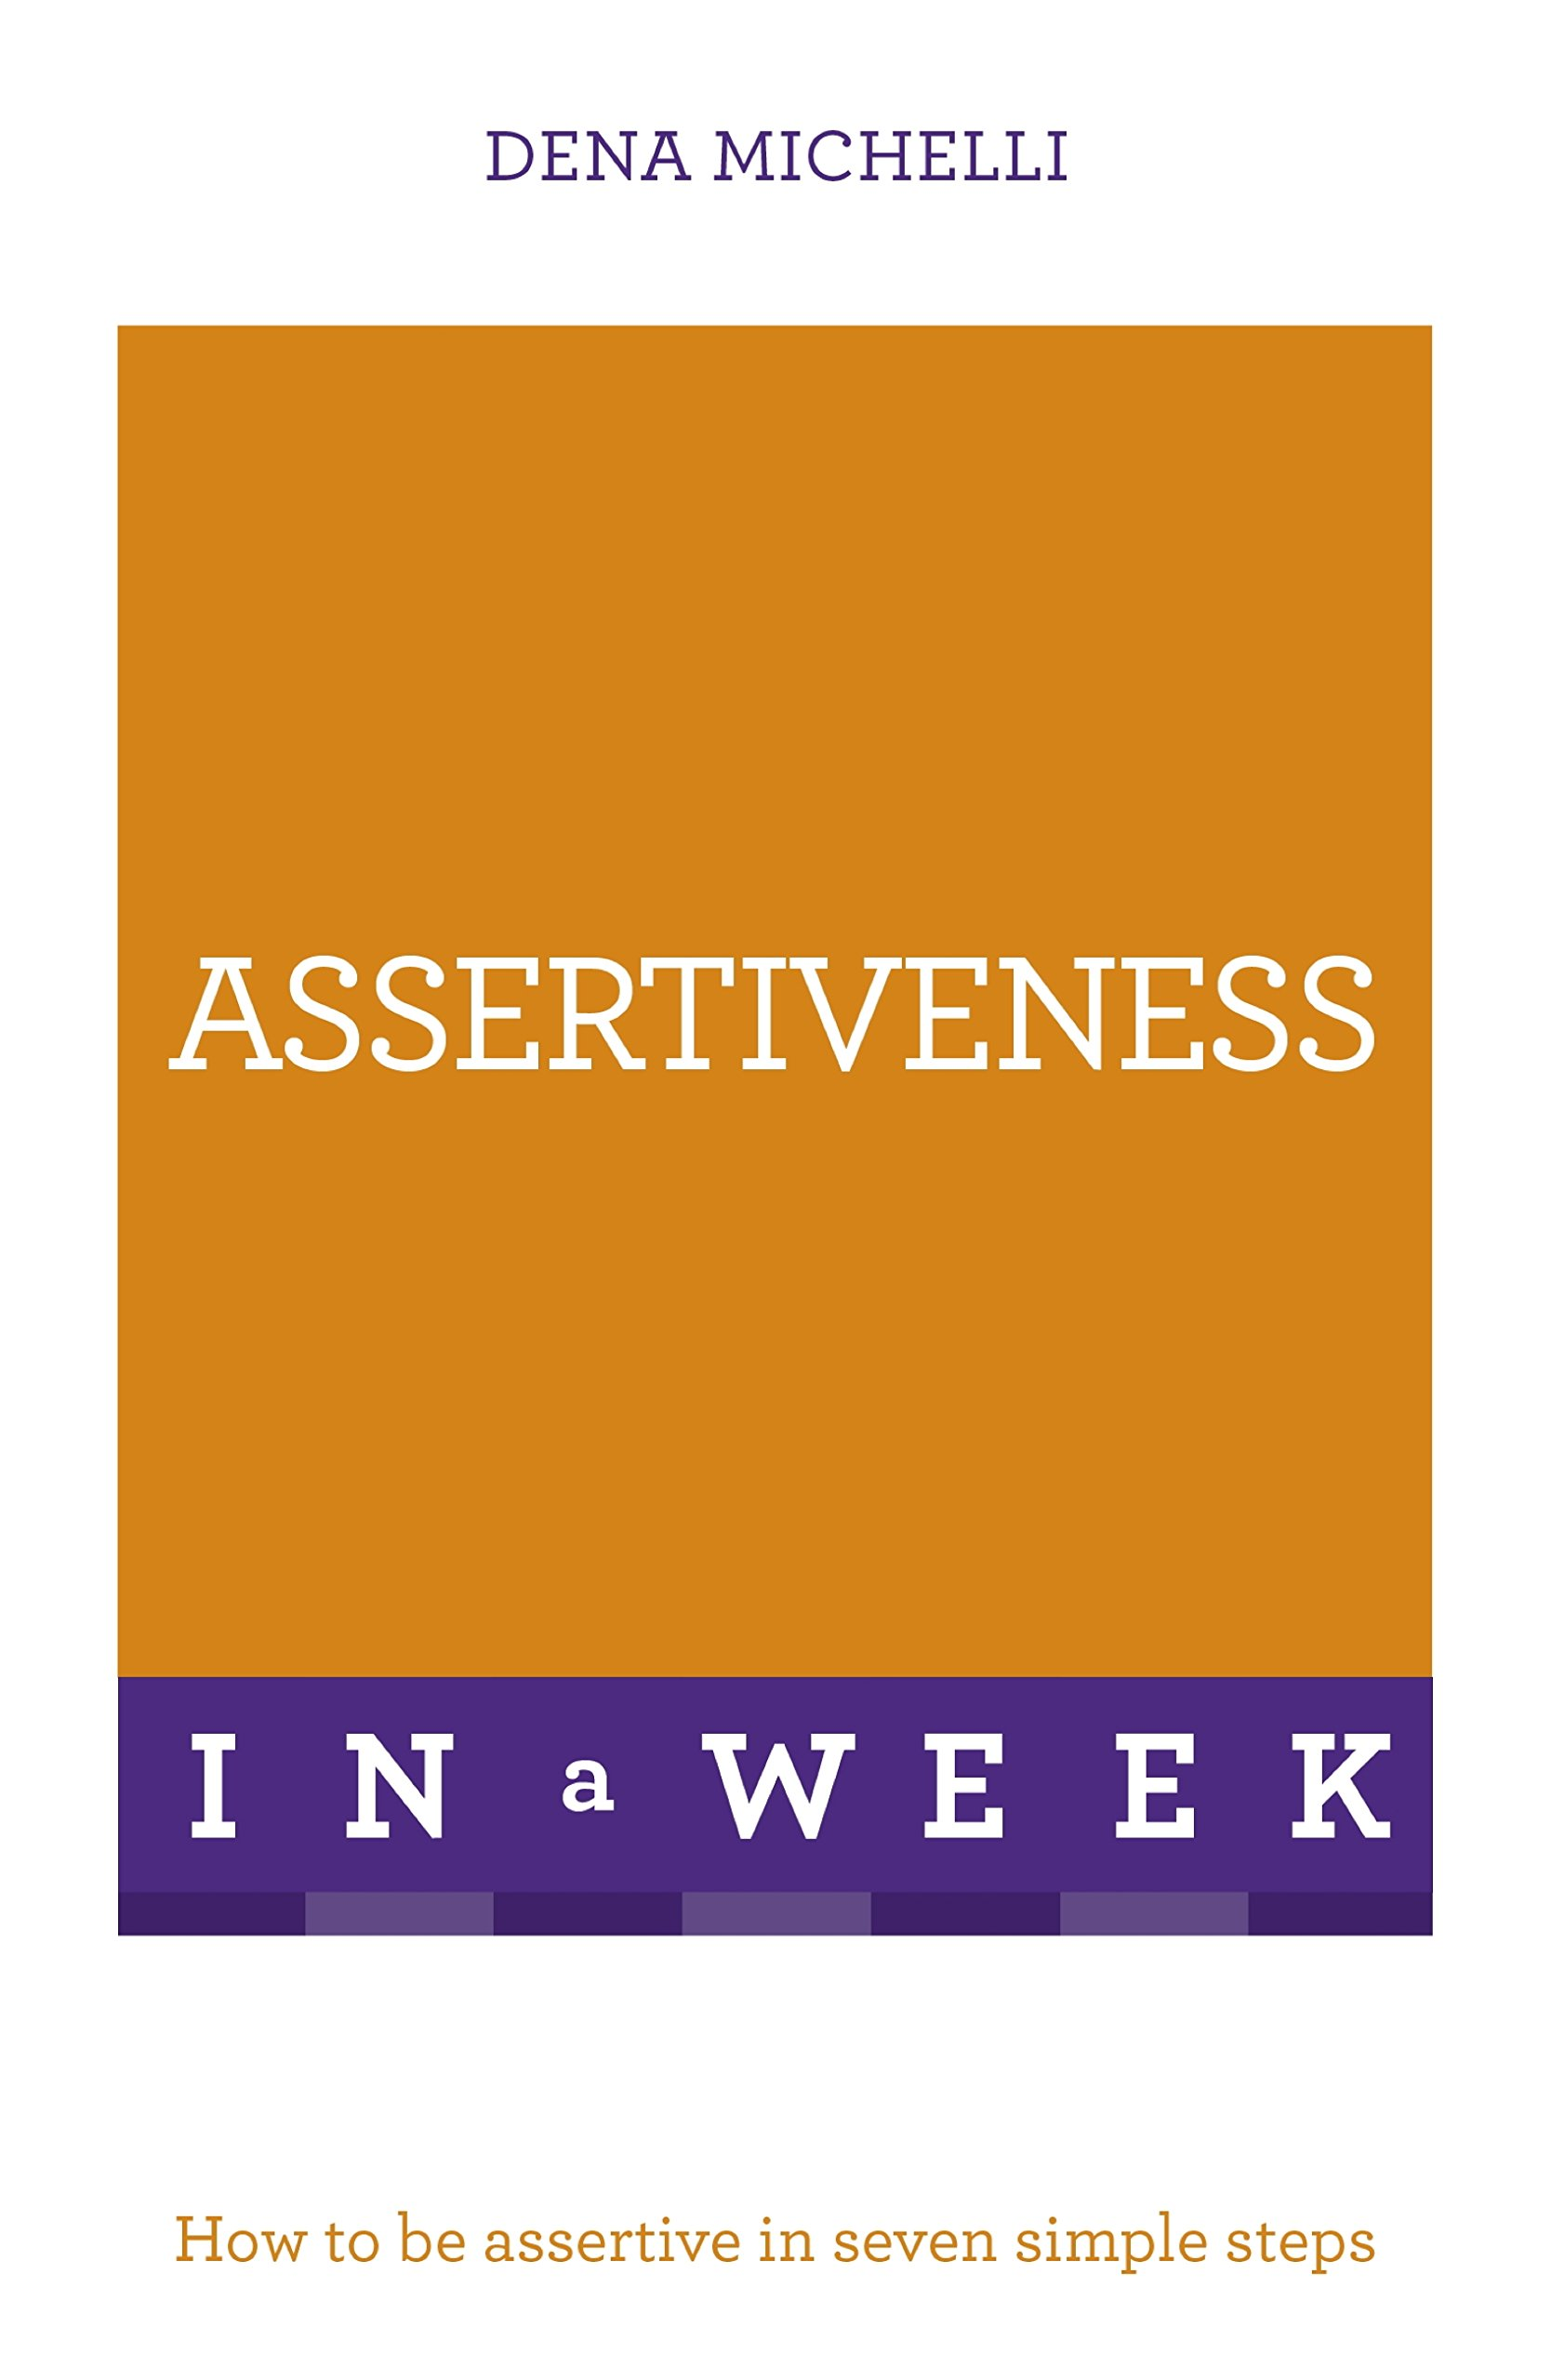 Assertiveness In A Week: How To Be Assertive In Seven Simple Steps (Teach Yourself)